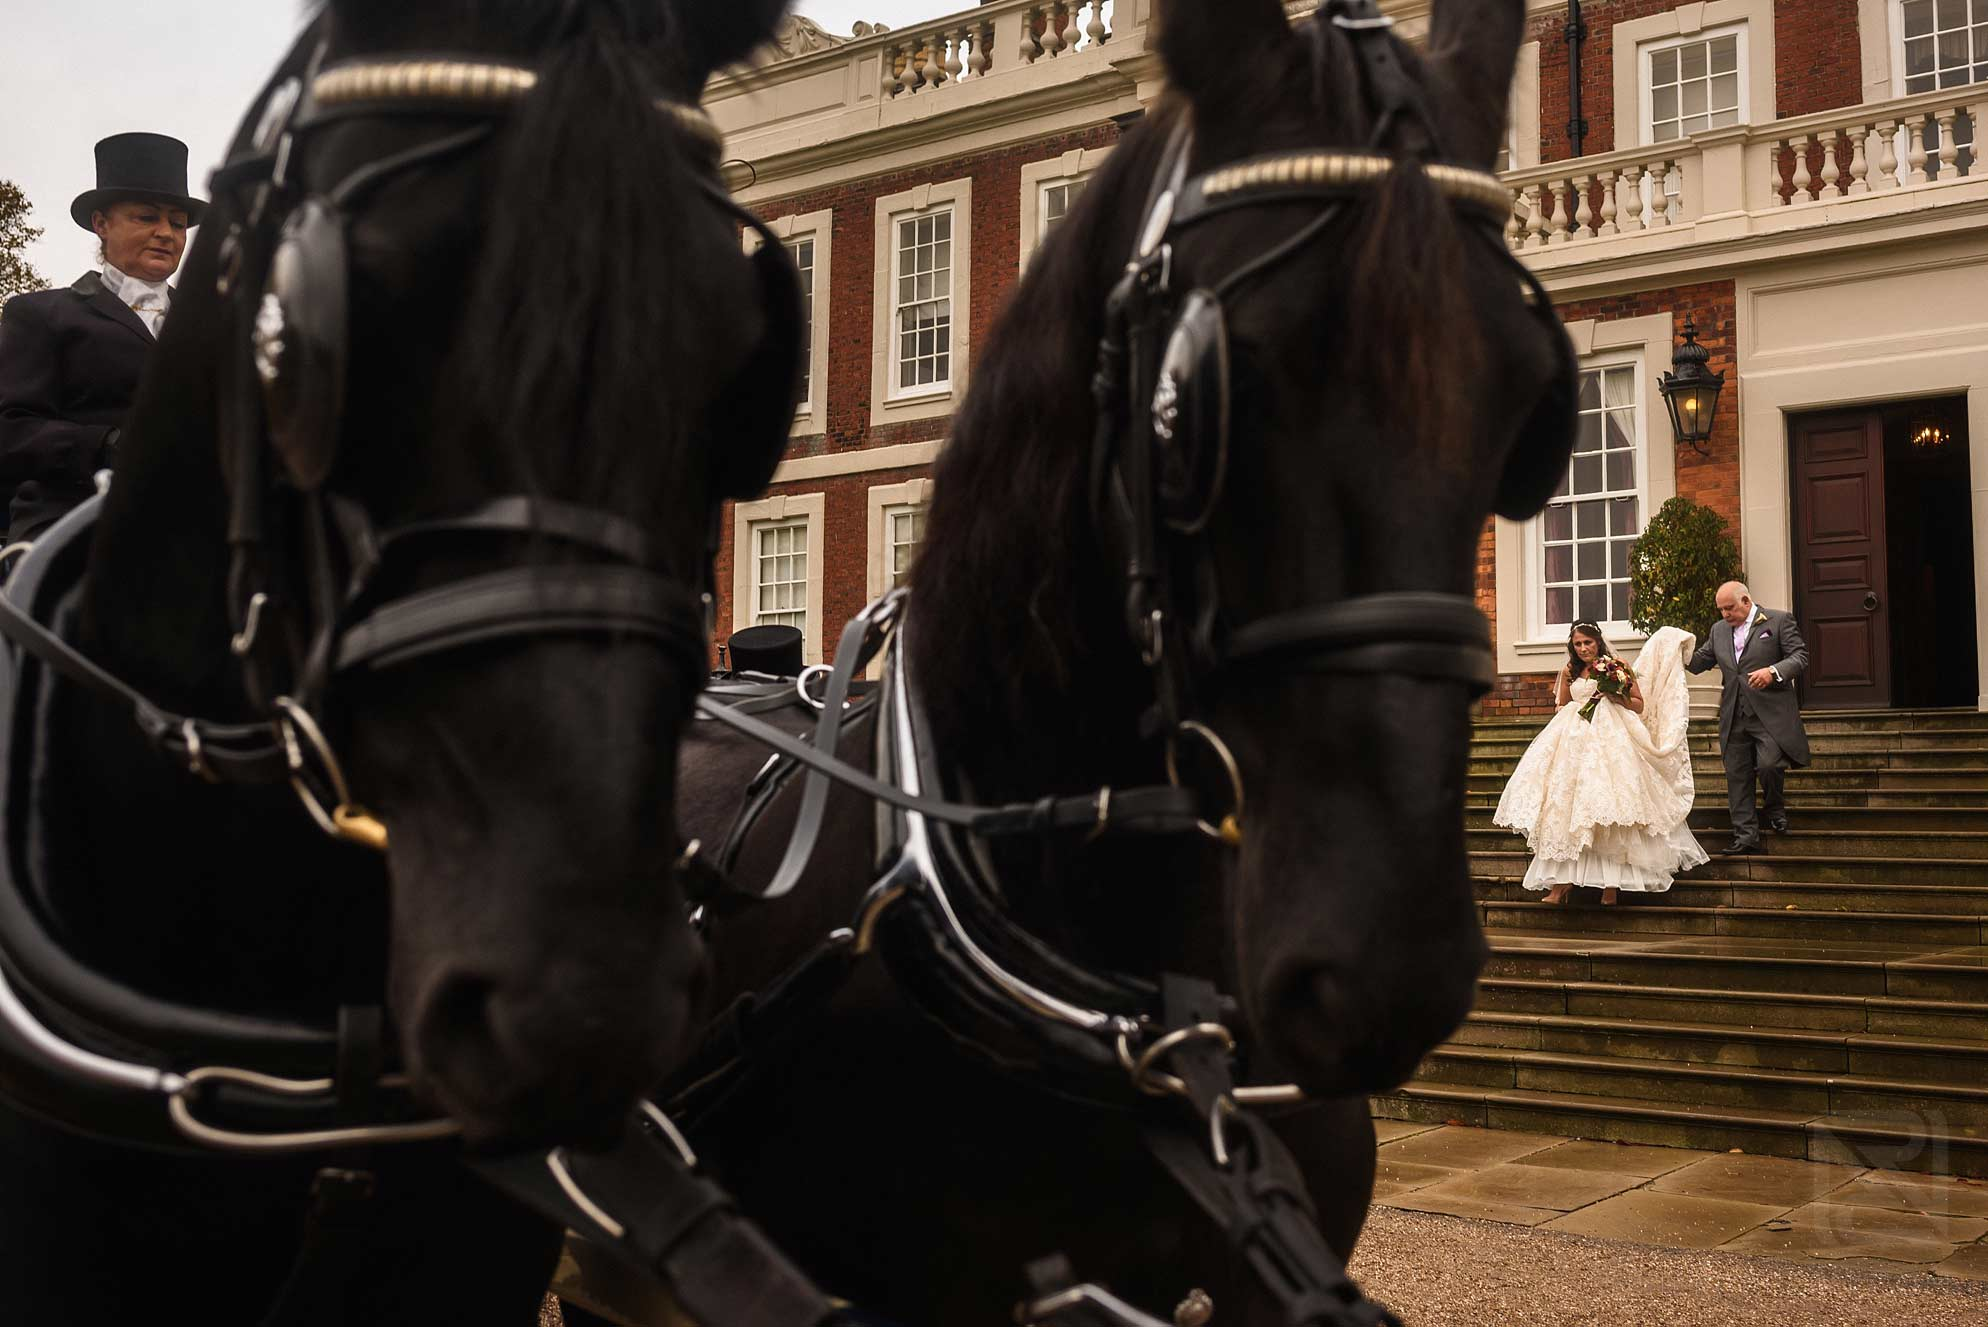 bride and gather going to church in horse drawn carriage